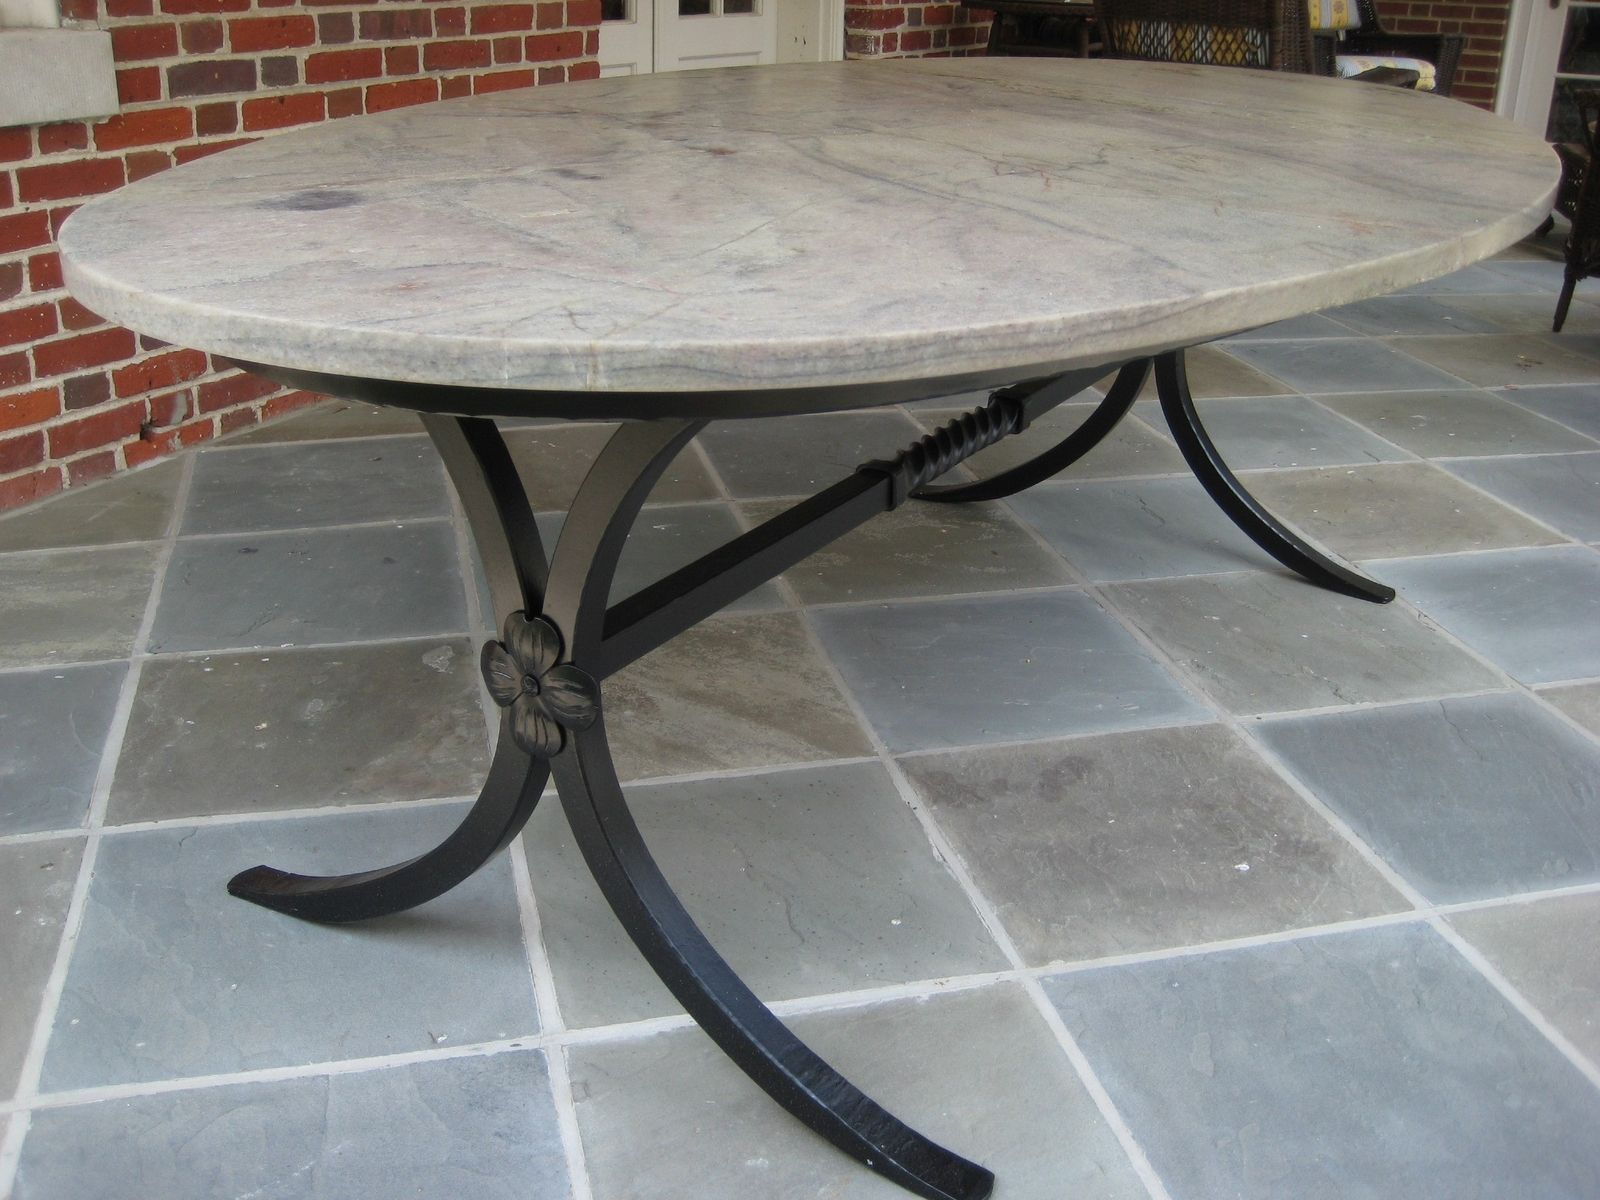 Hand Crafted Hand Forged Table Base With Granite Top By Phoenix Handcraft